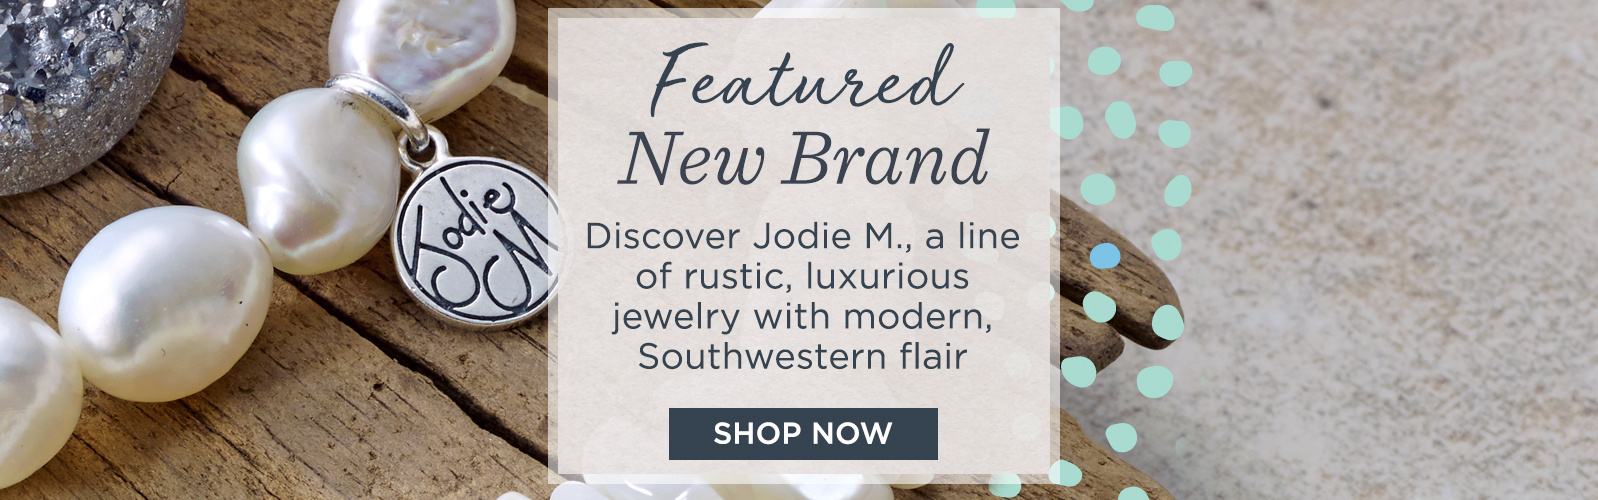 Featured New Brand. Discover Jodie M., a line of rustic, luxurious jewelry with modern, Southwestern flair. Click here to shop now!